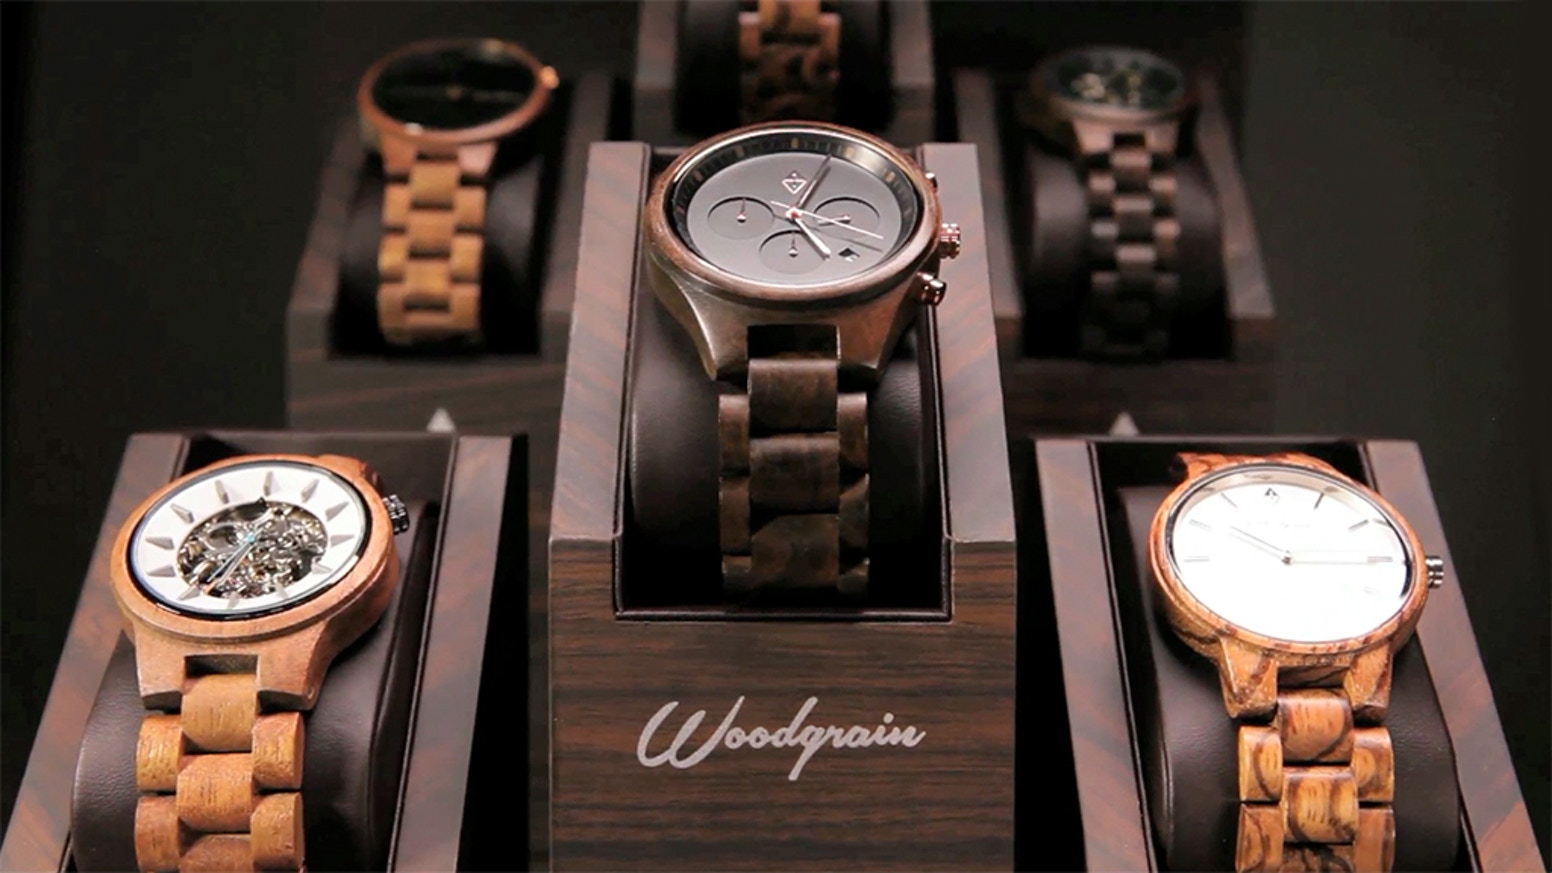 original wrigley wood seats watch reclaimed launches accessories of made limited from watches field edition grain